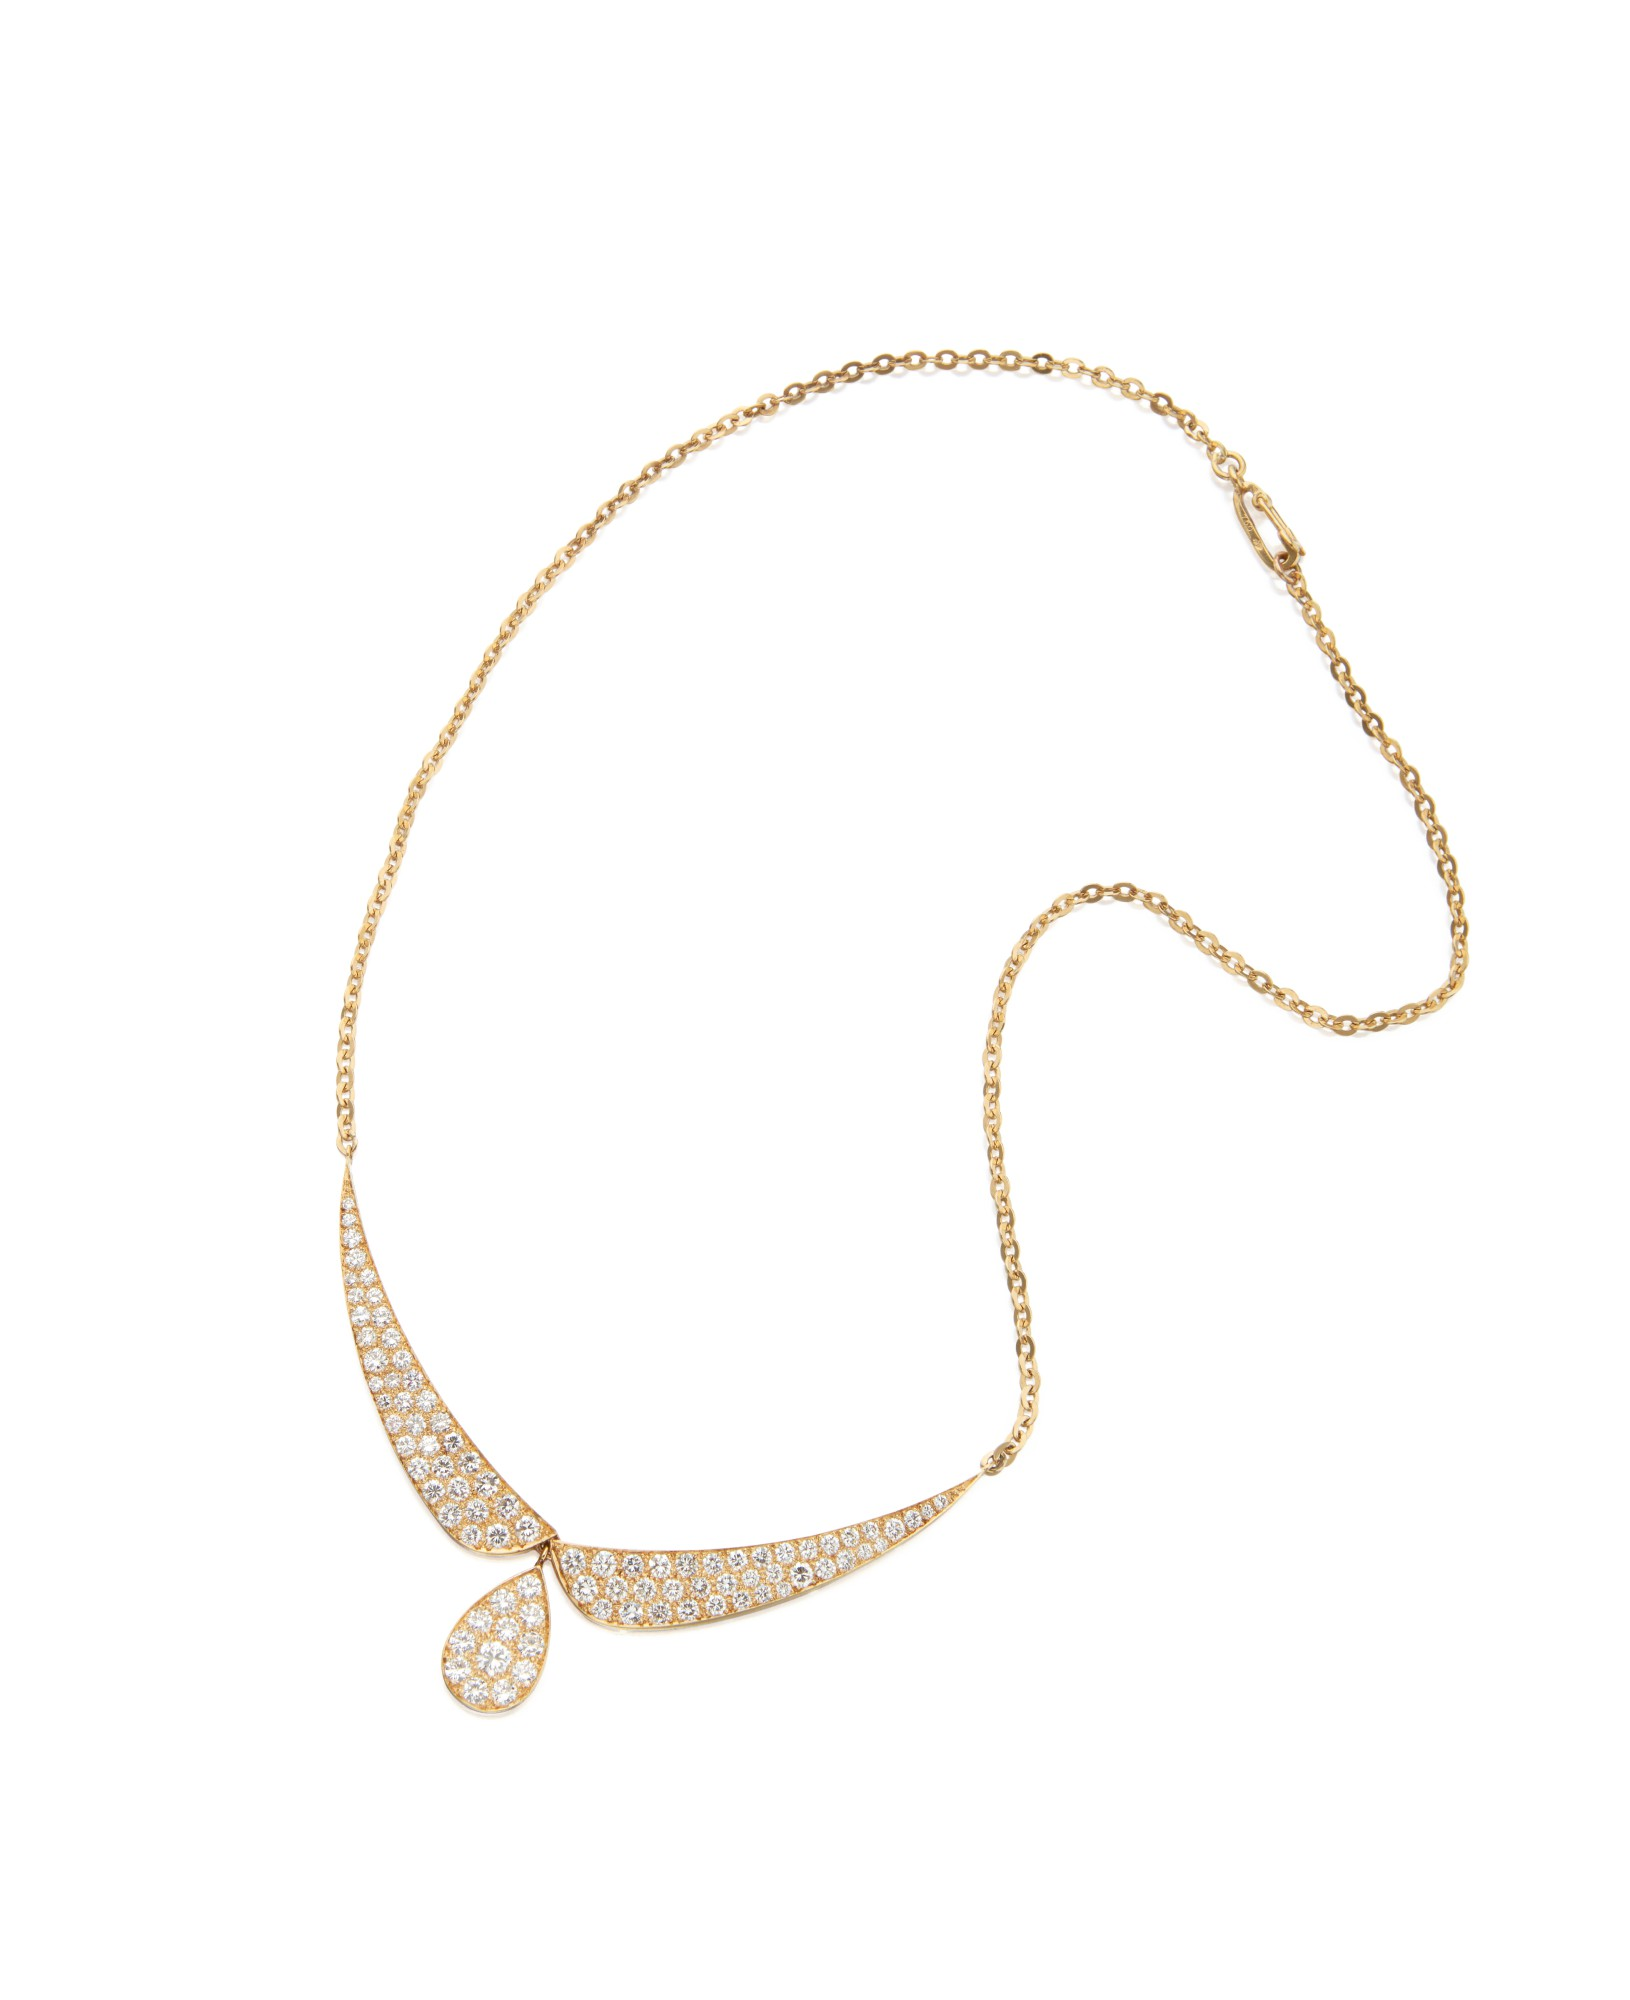 GOLD AND DIAMOND NECKLACE, VAN CLEEF & ARPELS, FRANCE